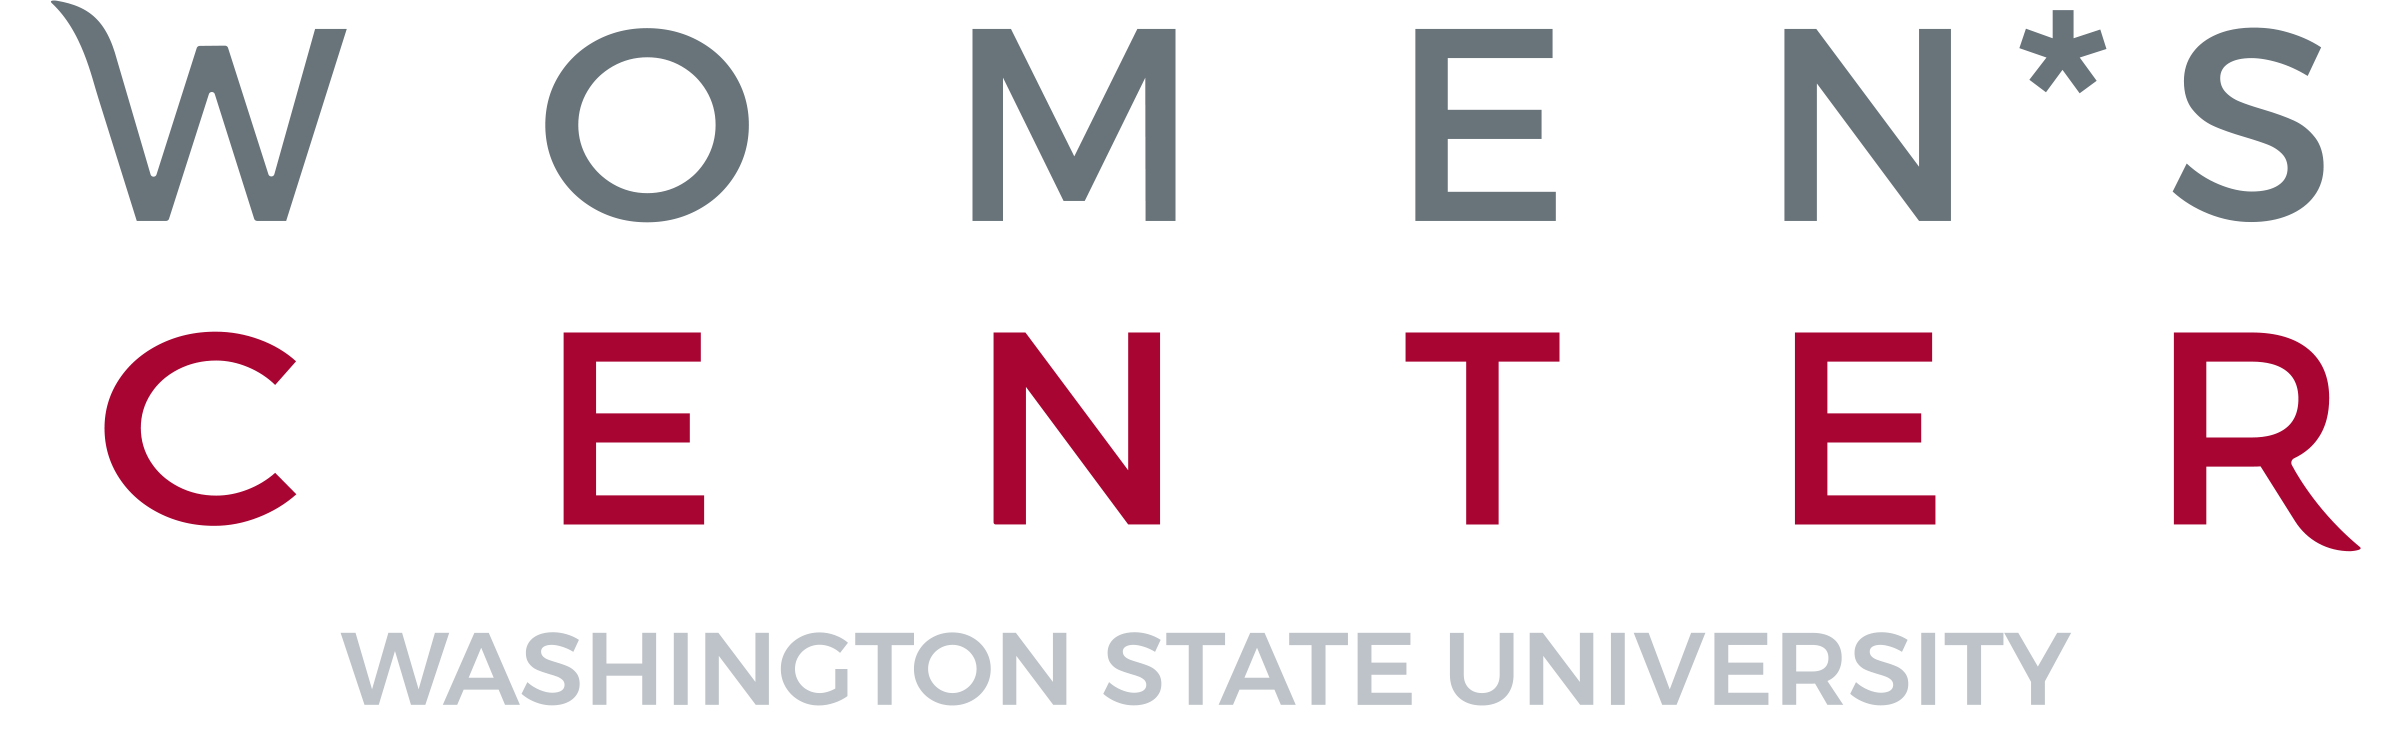 Washington State University Women's Center Logo, crimson and gray